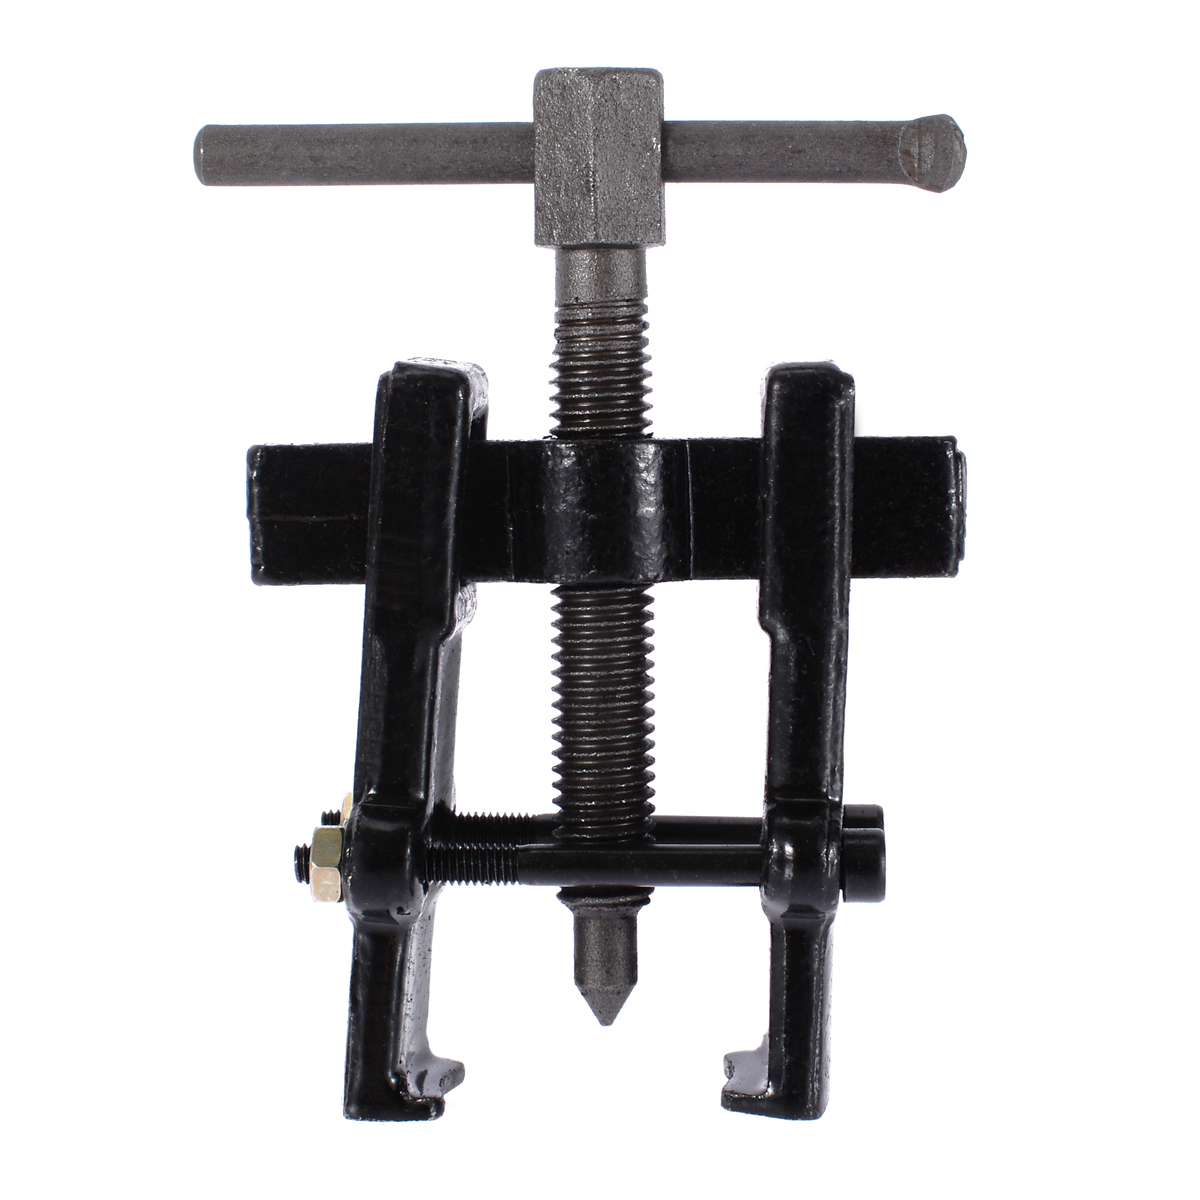 Power Tool Accessories Practical New Two Jaw Gear Pulley Bearing Puller 2 4 6 Small Leg Large Mechanics Black Repairing Car Tools Kits Hand Tool Sets Back To Search Resultstools